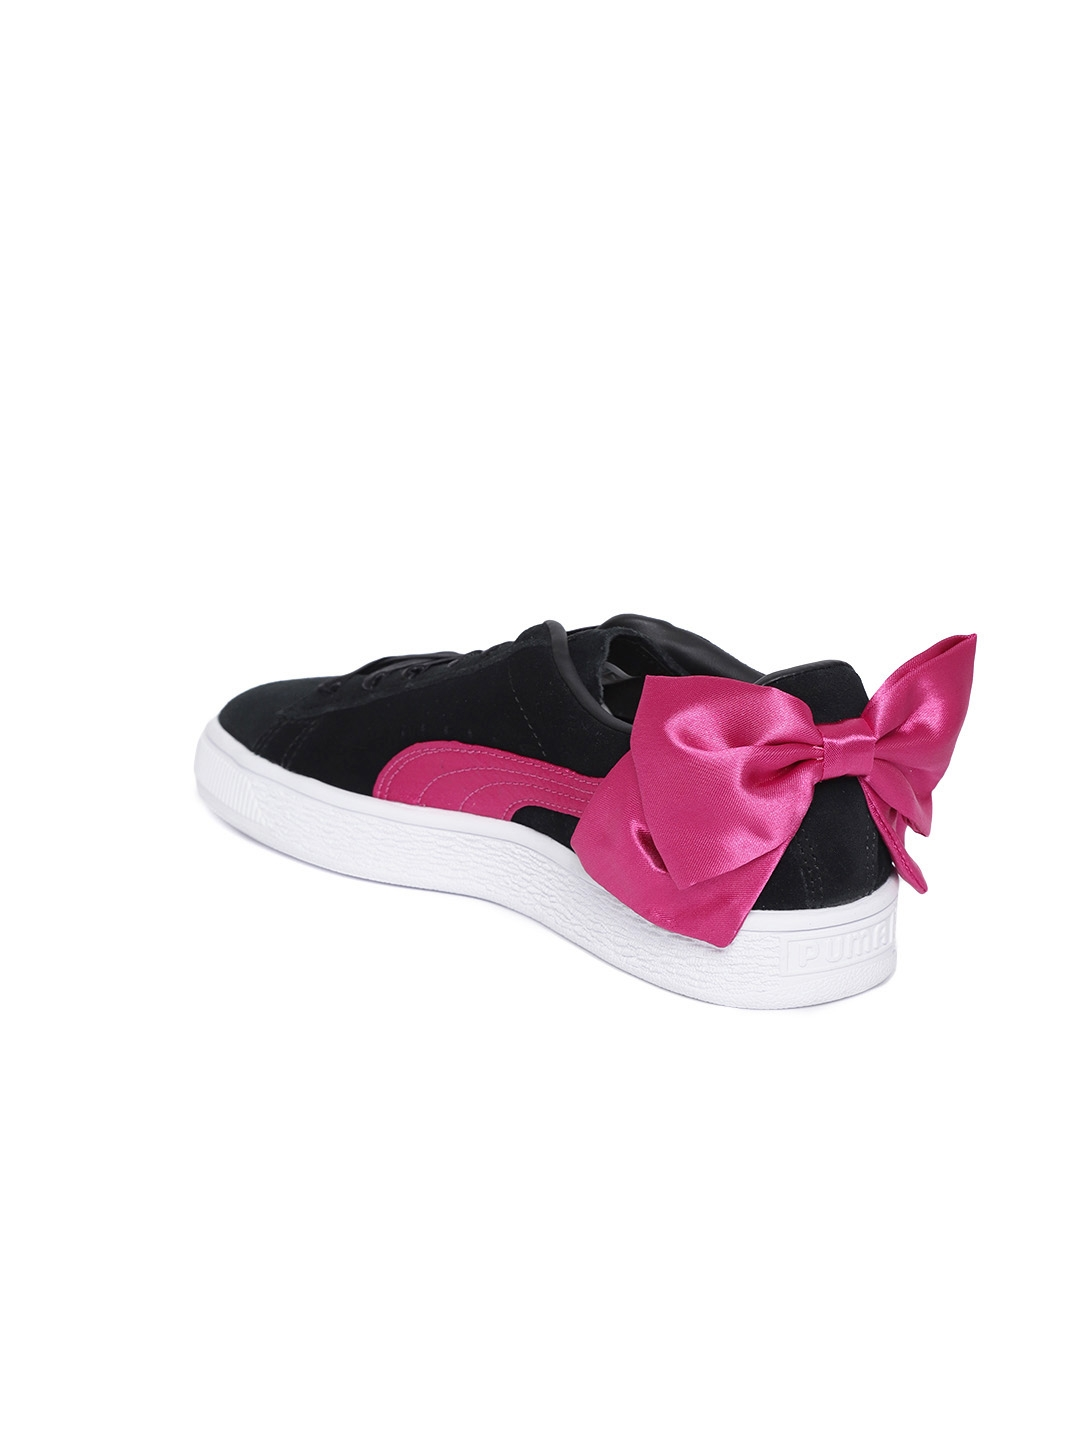 499e44c5ec8 Buy Puma Girls Black Suede Bow Junior Sneakers - Casual Shoes for ...